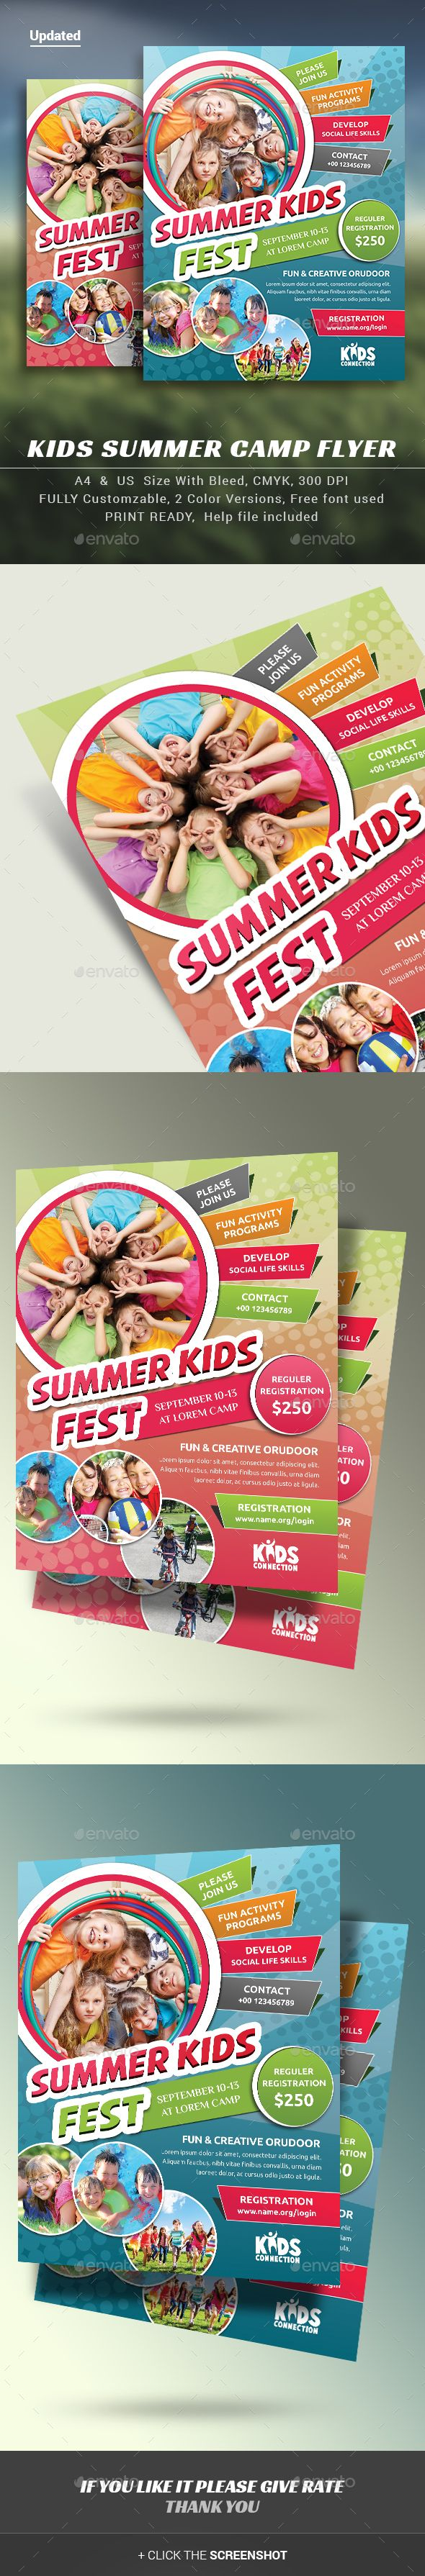 Kids Summer Camp Flyer — Photoshop PSD #sports #kids • Available here → https://graphicriver.net/item/kids-summer-camp-flyer/11718415?ref=pxcr